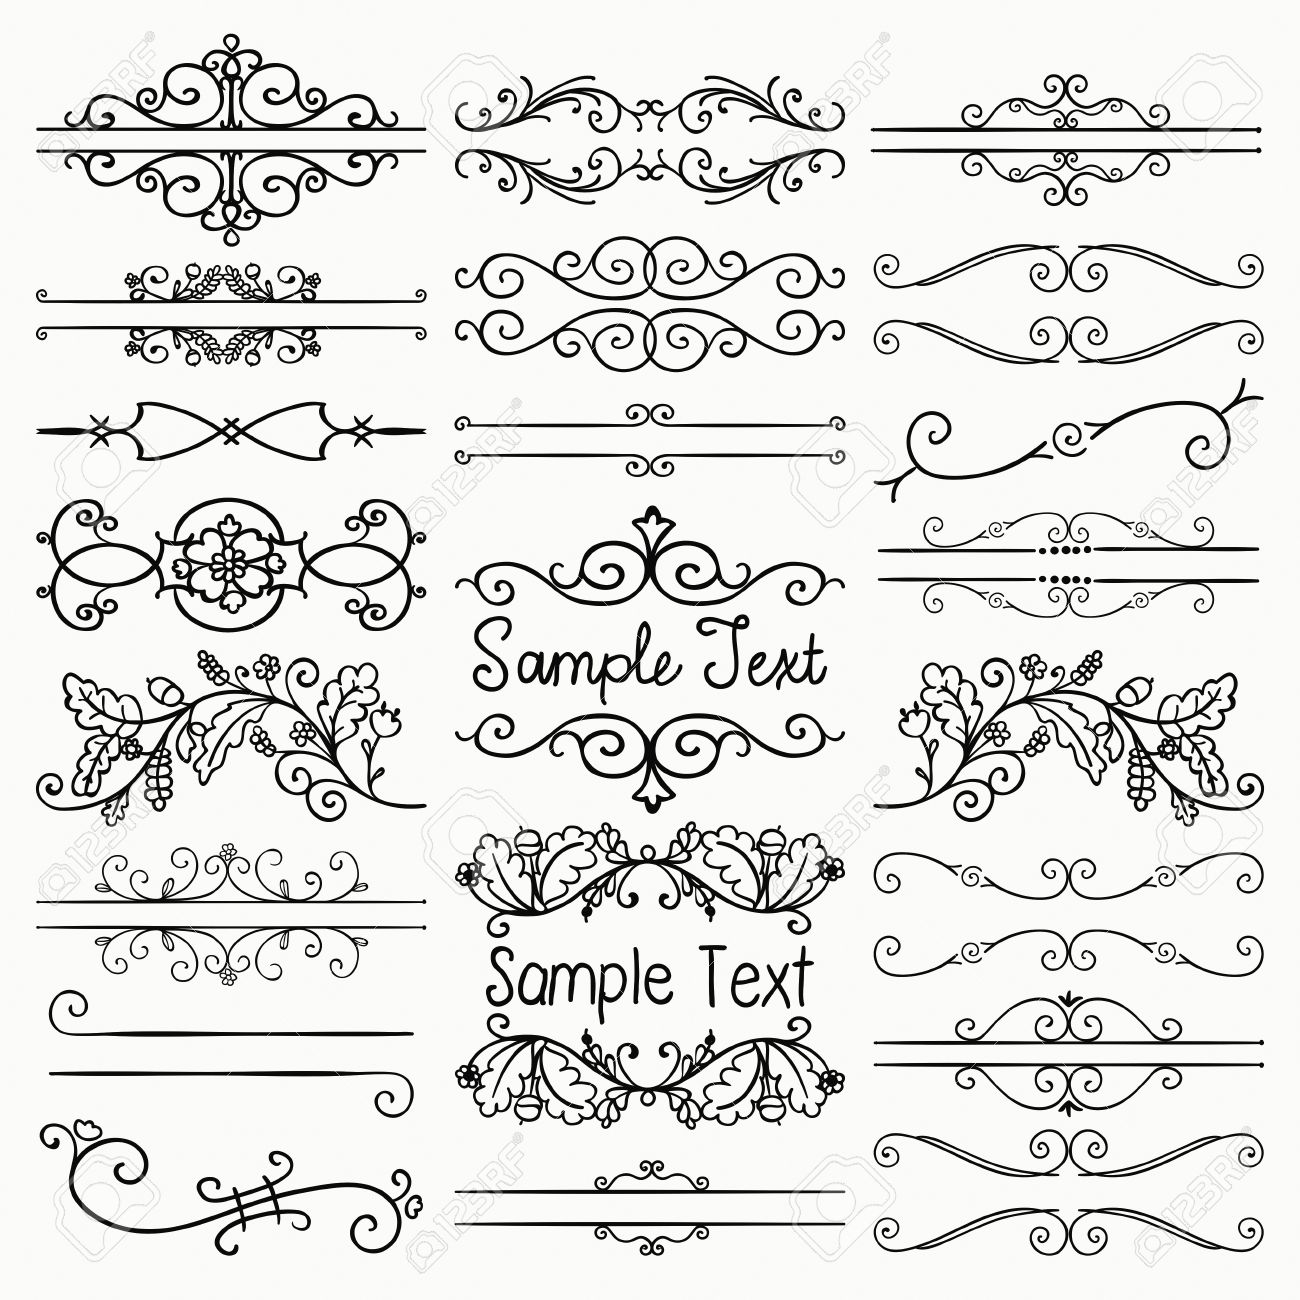 Vintage Vector Illustration Set Of Hand Drawn Sketched Black Doodle Design Elements Decorative Floral Rustic Dividers Borders